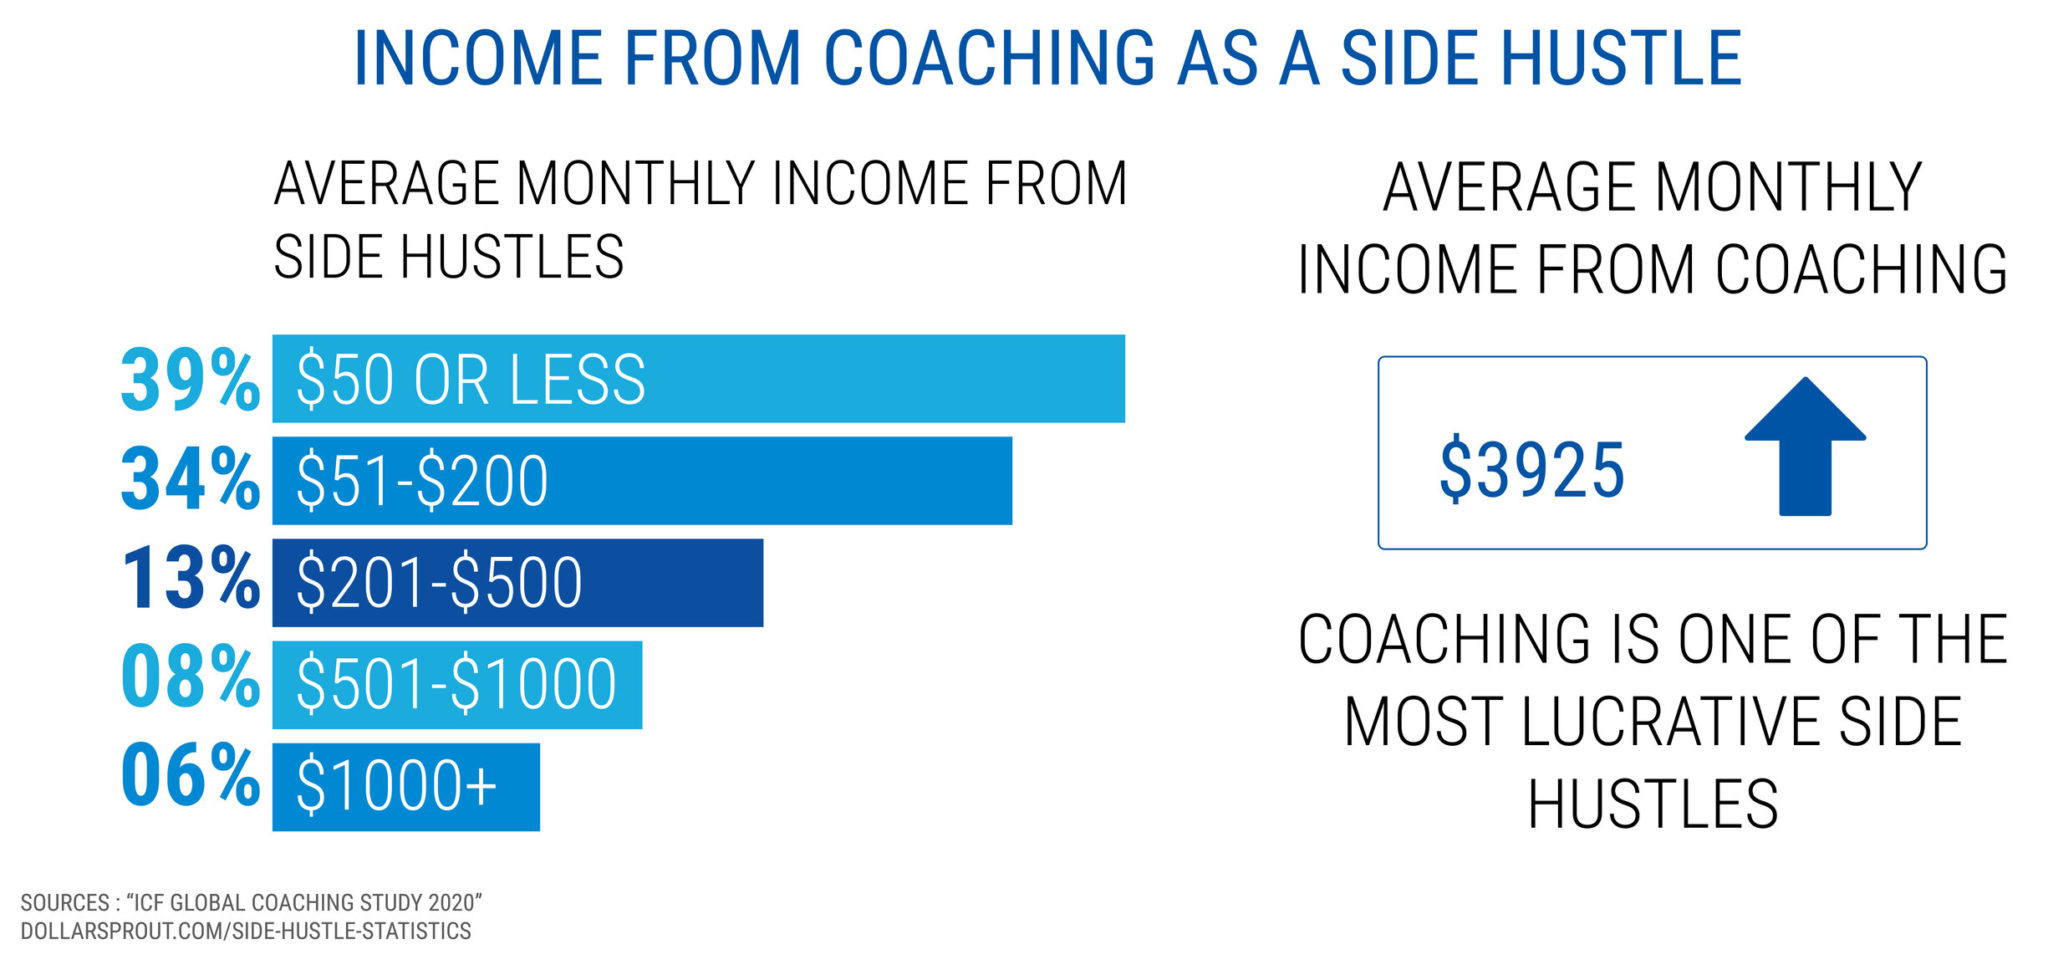 income from coaching as a side hustle - starting a coaching business while working full-time